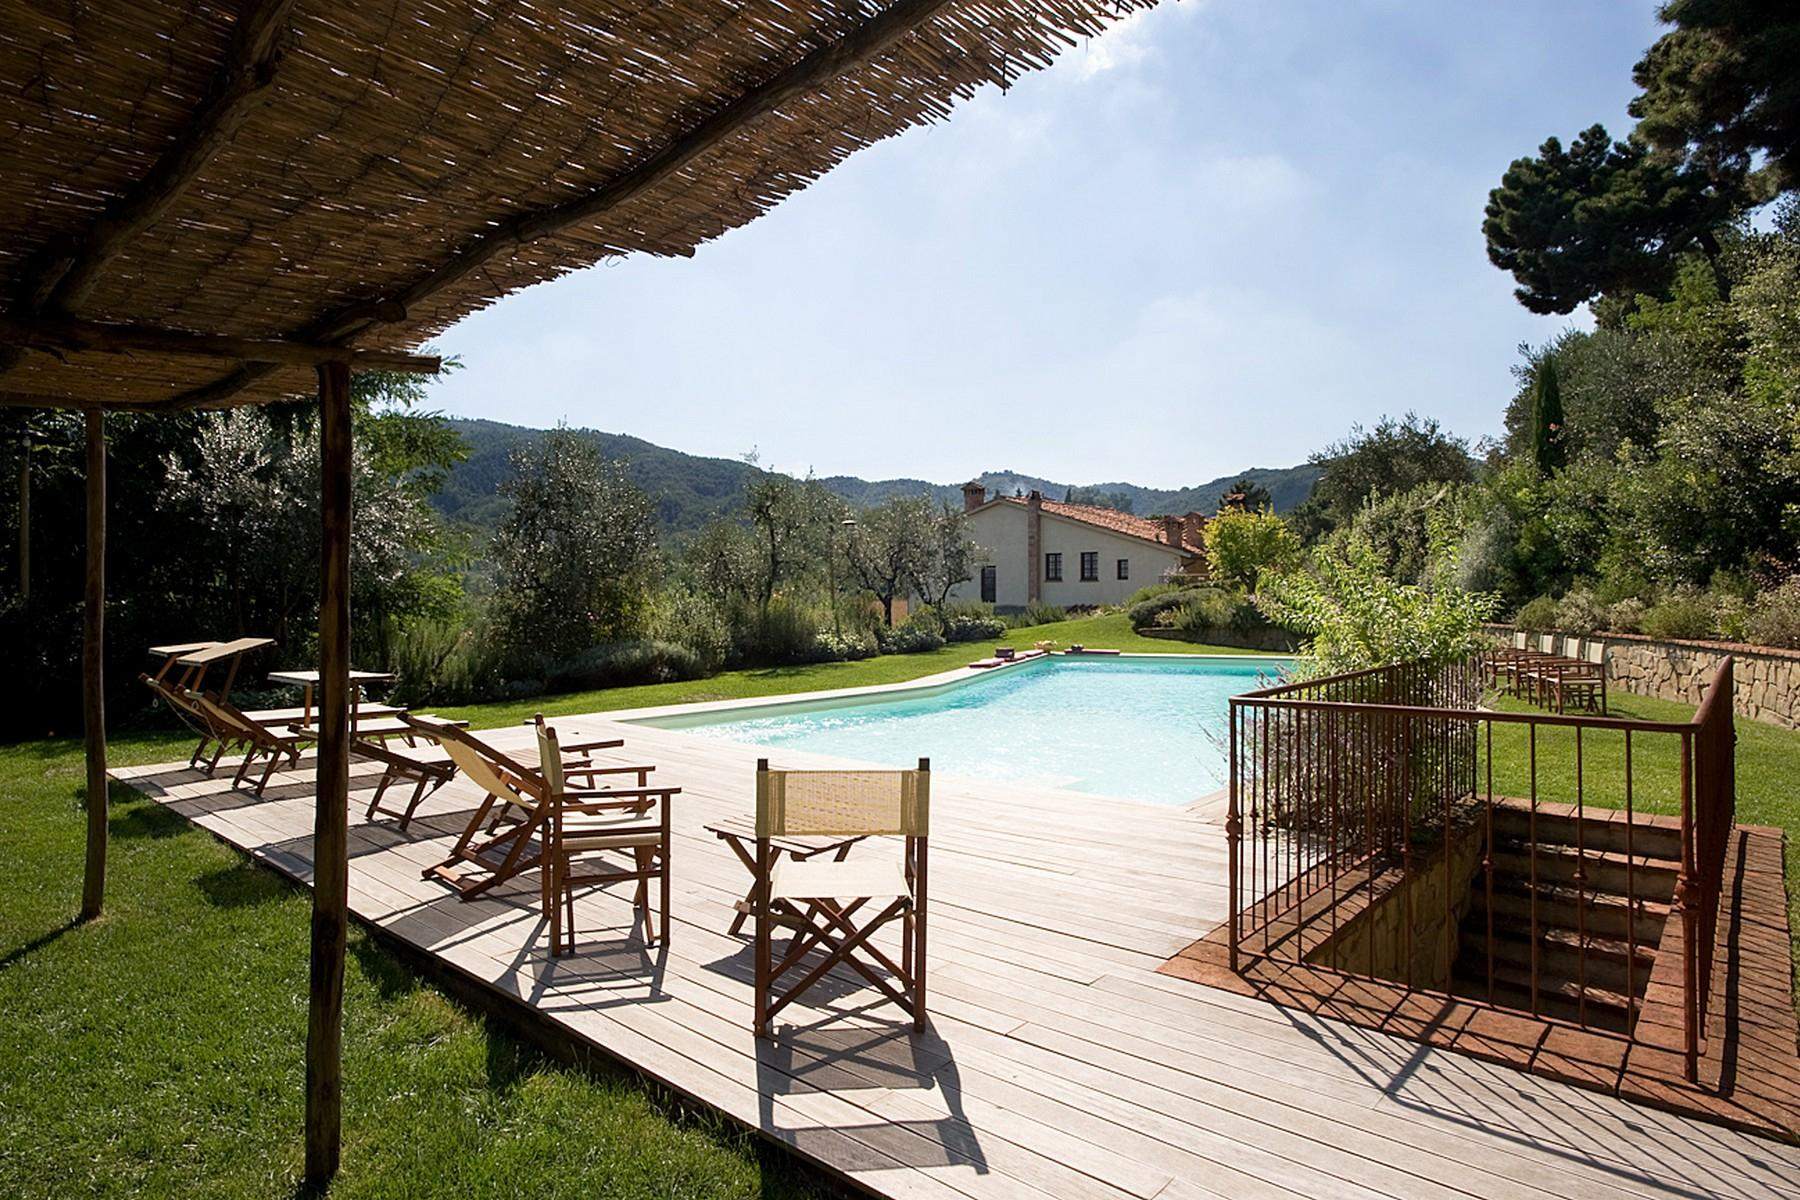 Farmhouse for sale in the Tuscan hills - 16